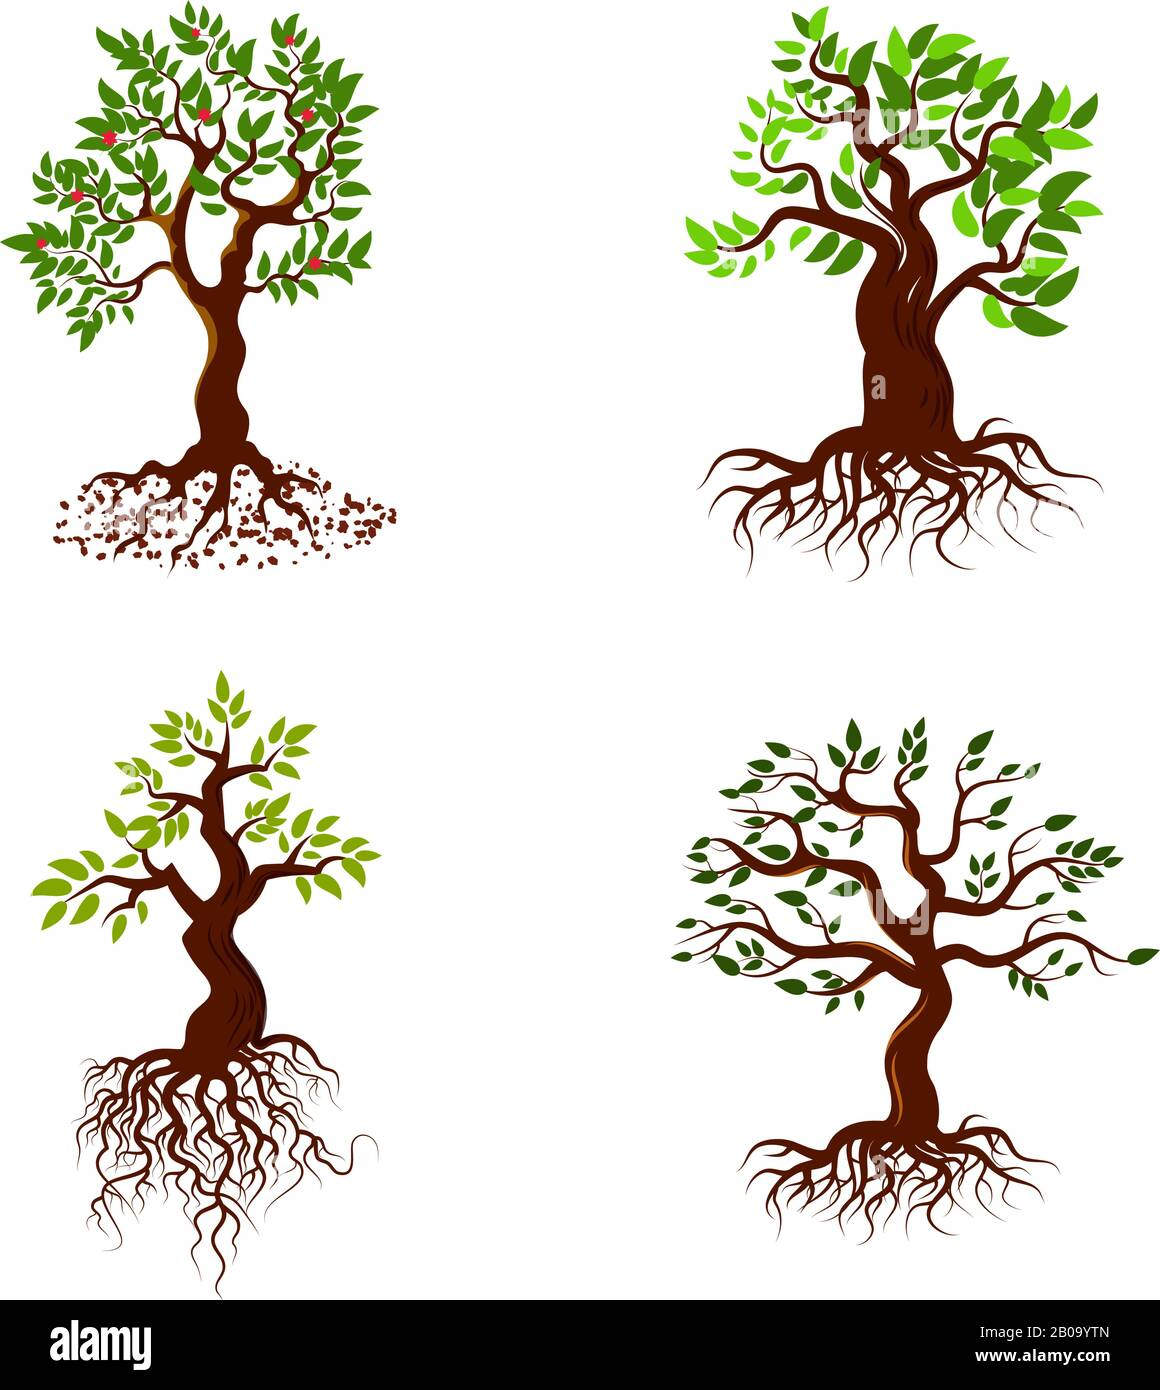 People Clip Art w Roots